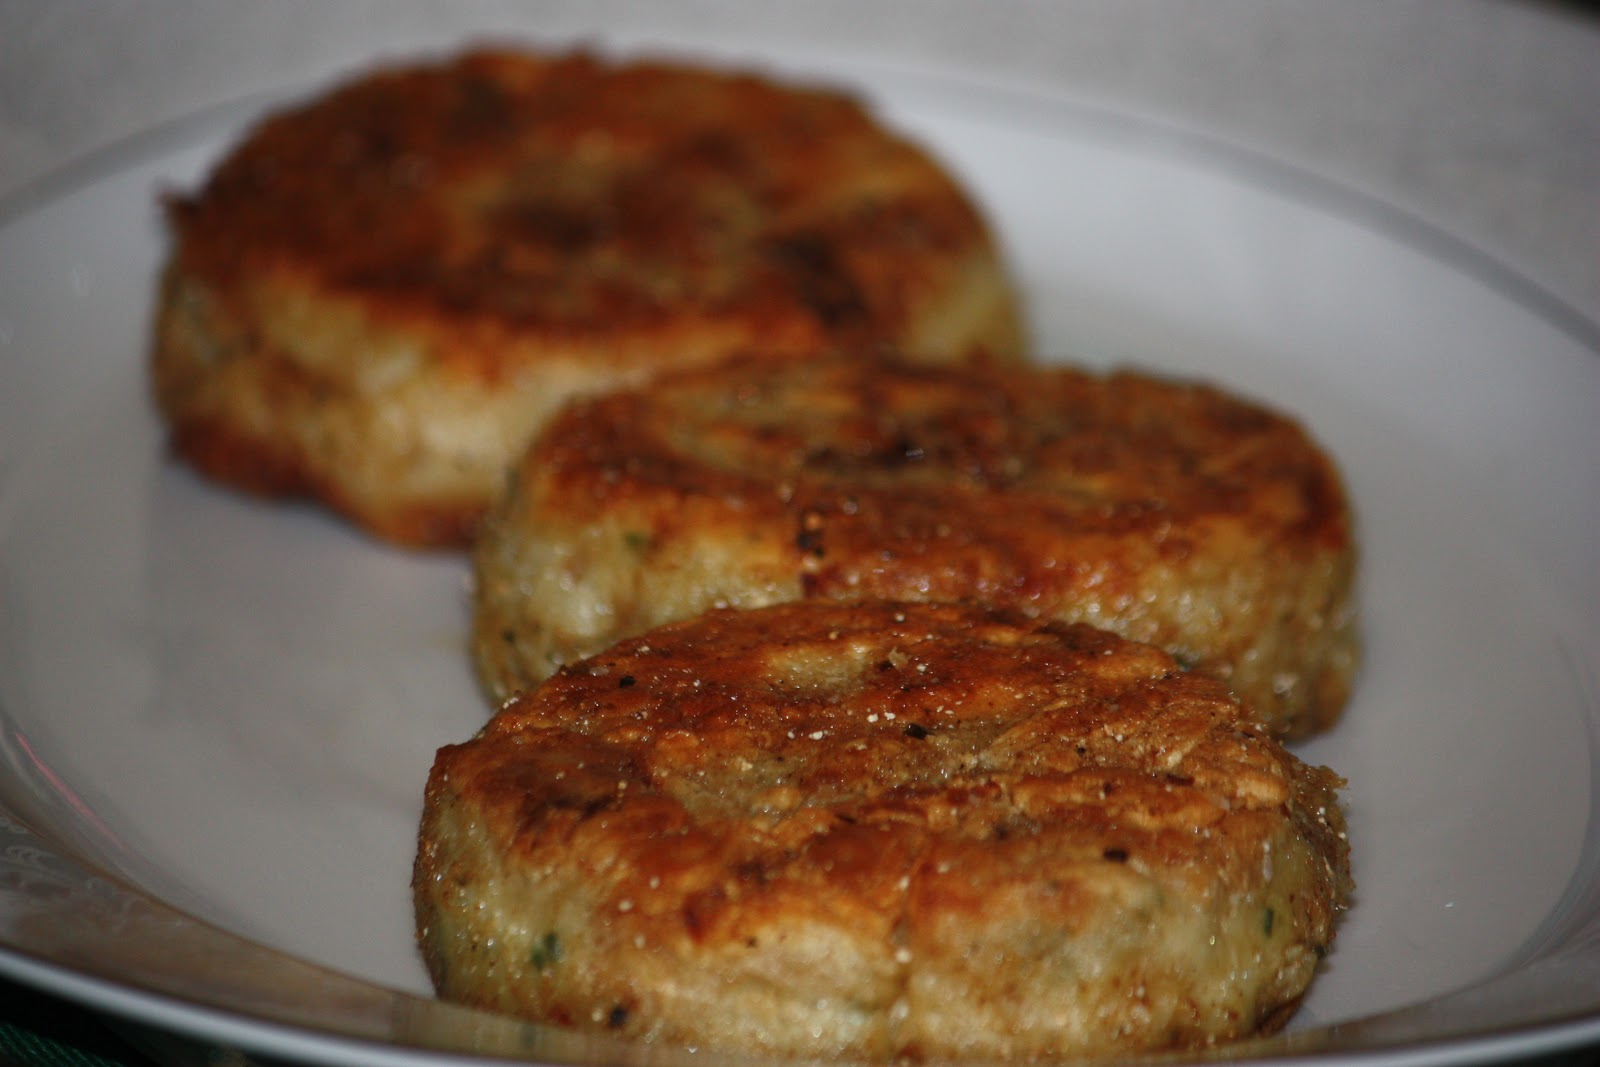 Newfoundland Food And Recipes With New England Influences Fish Cakes Two Ways